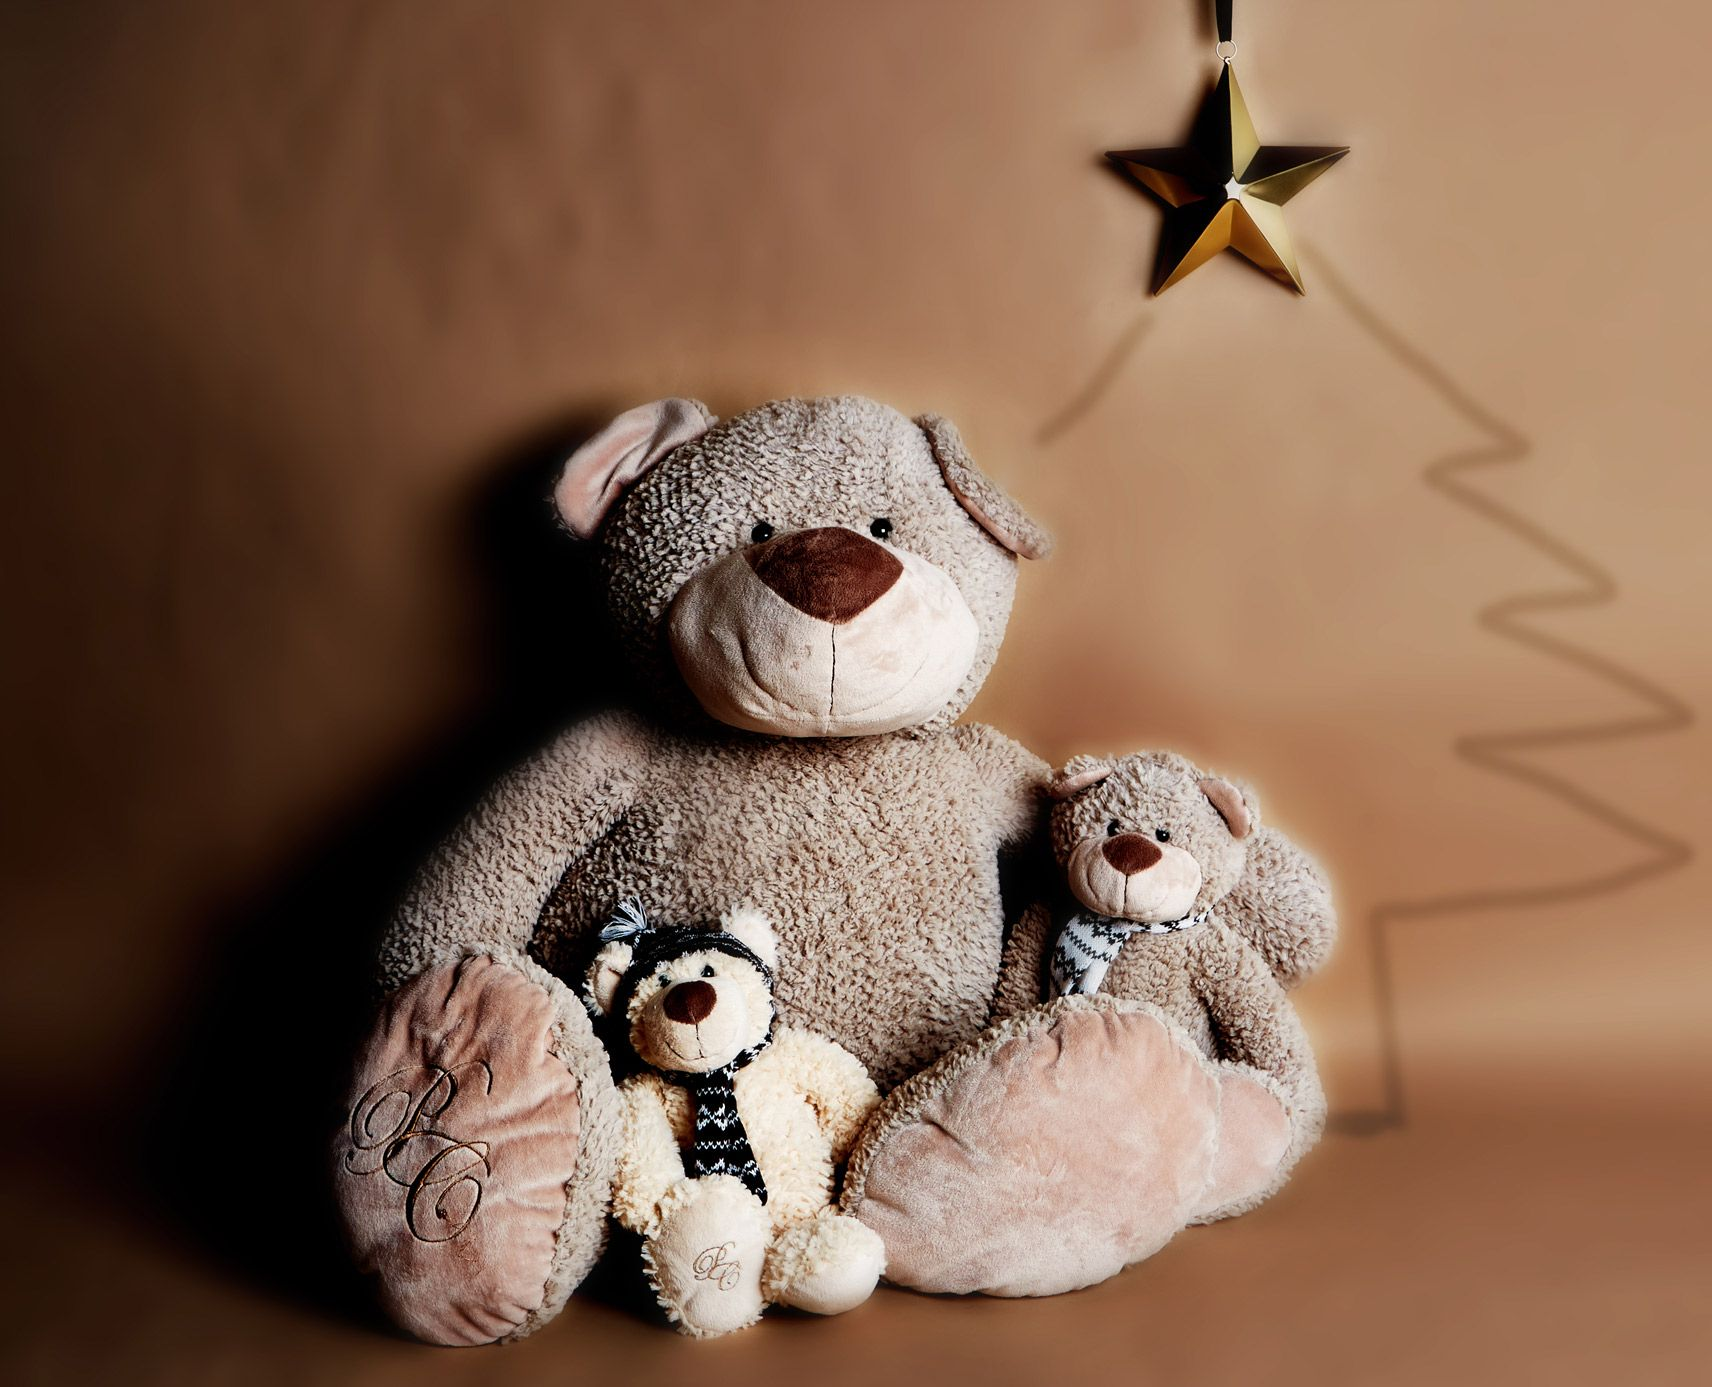 Cuddly Stuffed Bears From Paul Costelloe Living, Available